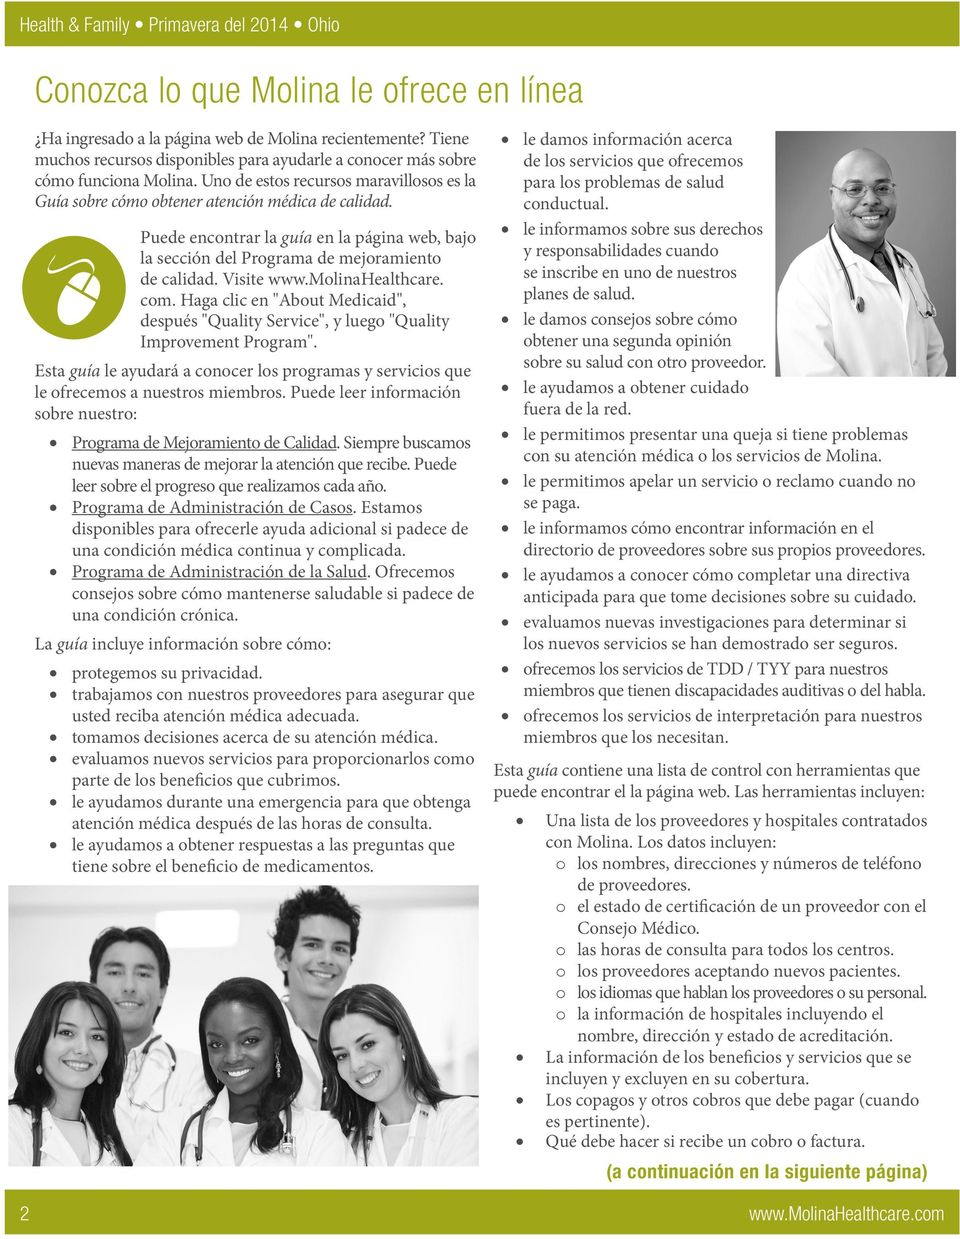 "Visite www.molinahealthcare. com. Haga clic en ""About Medicaid"", después ""Quality Service"", y luego ""Quality Improvement Program""."